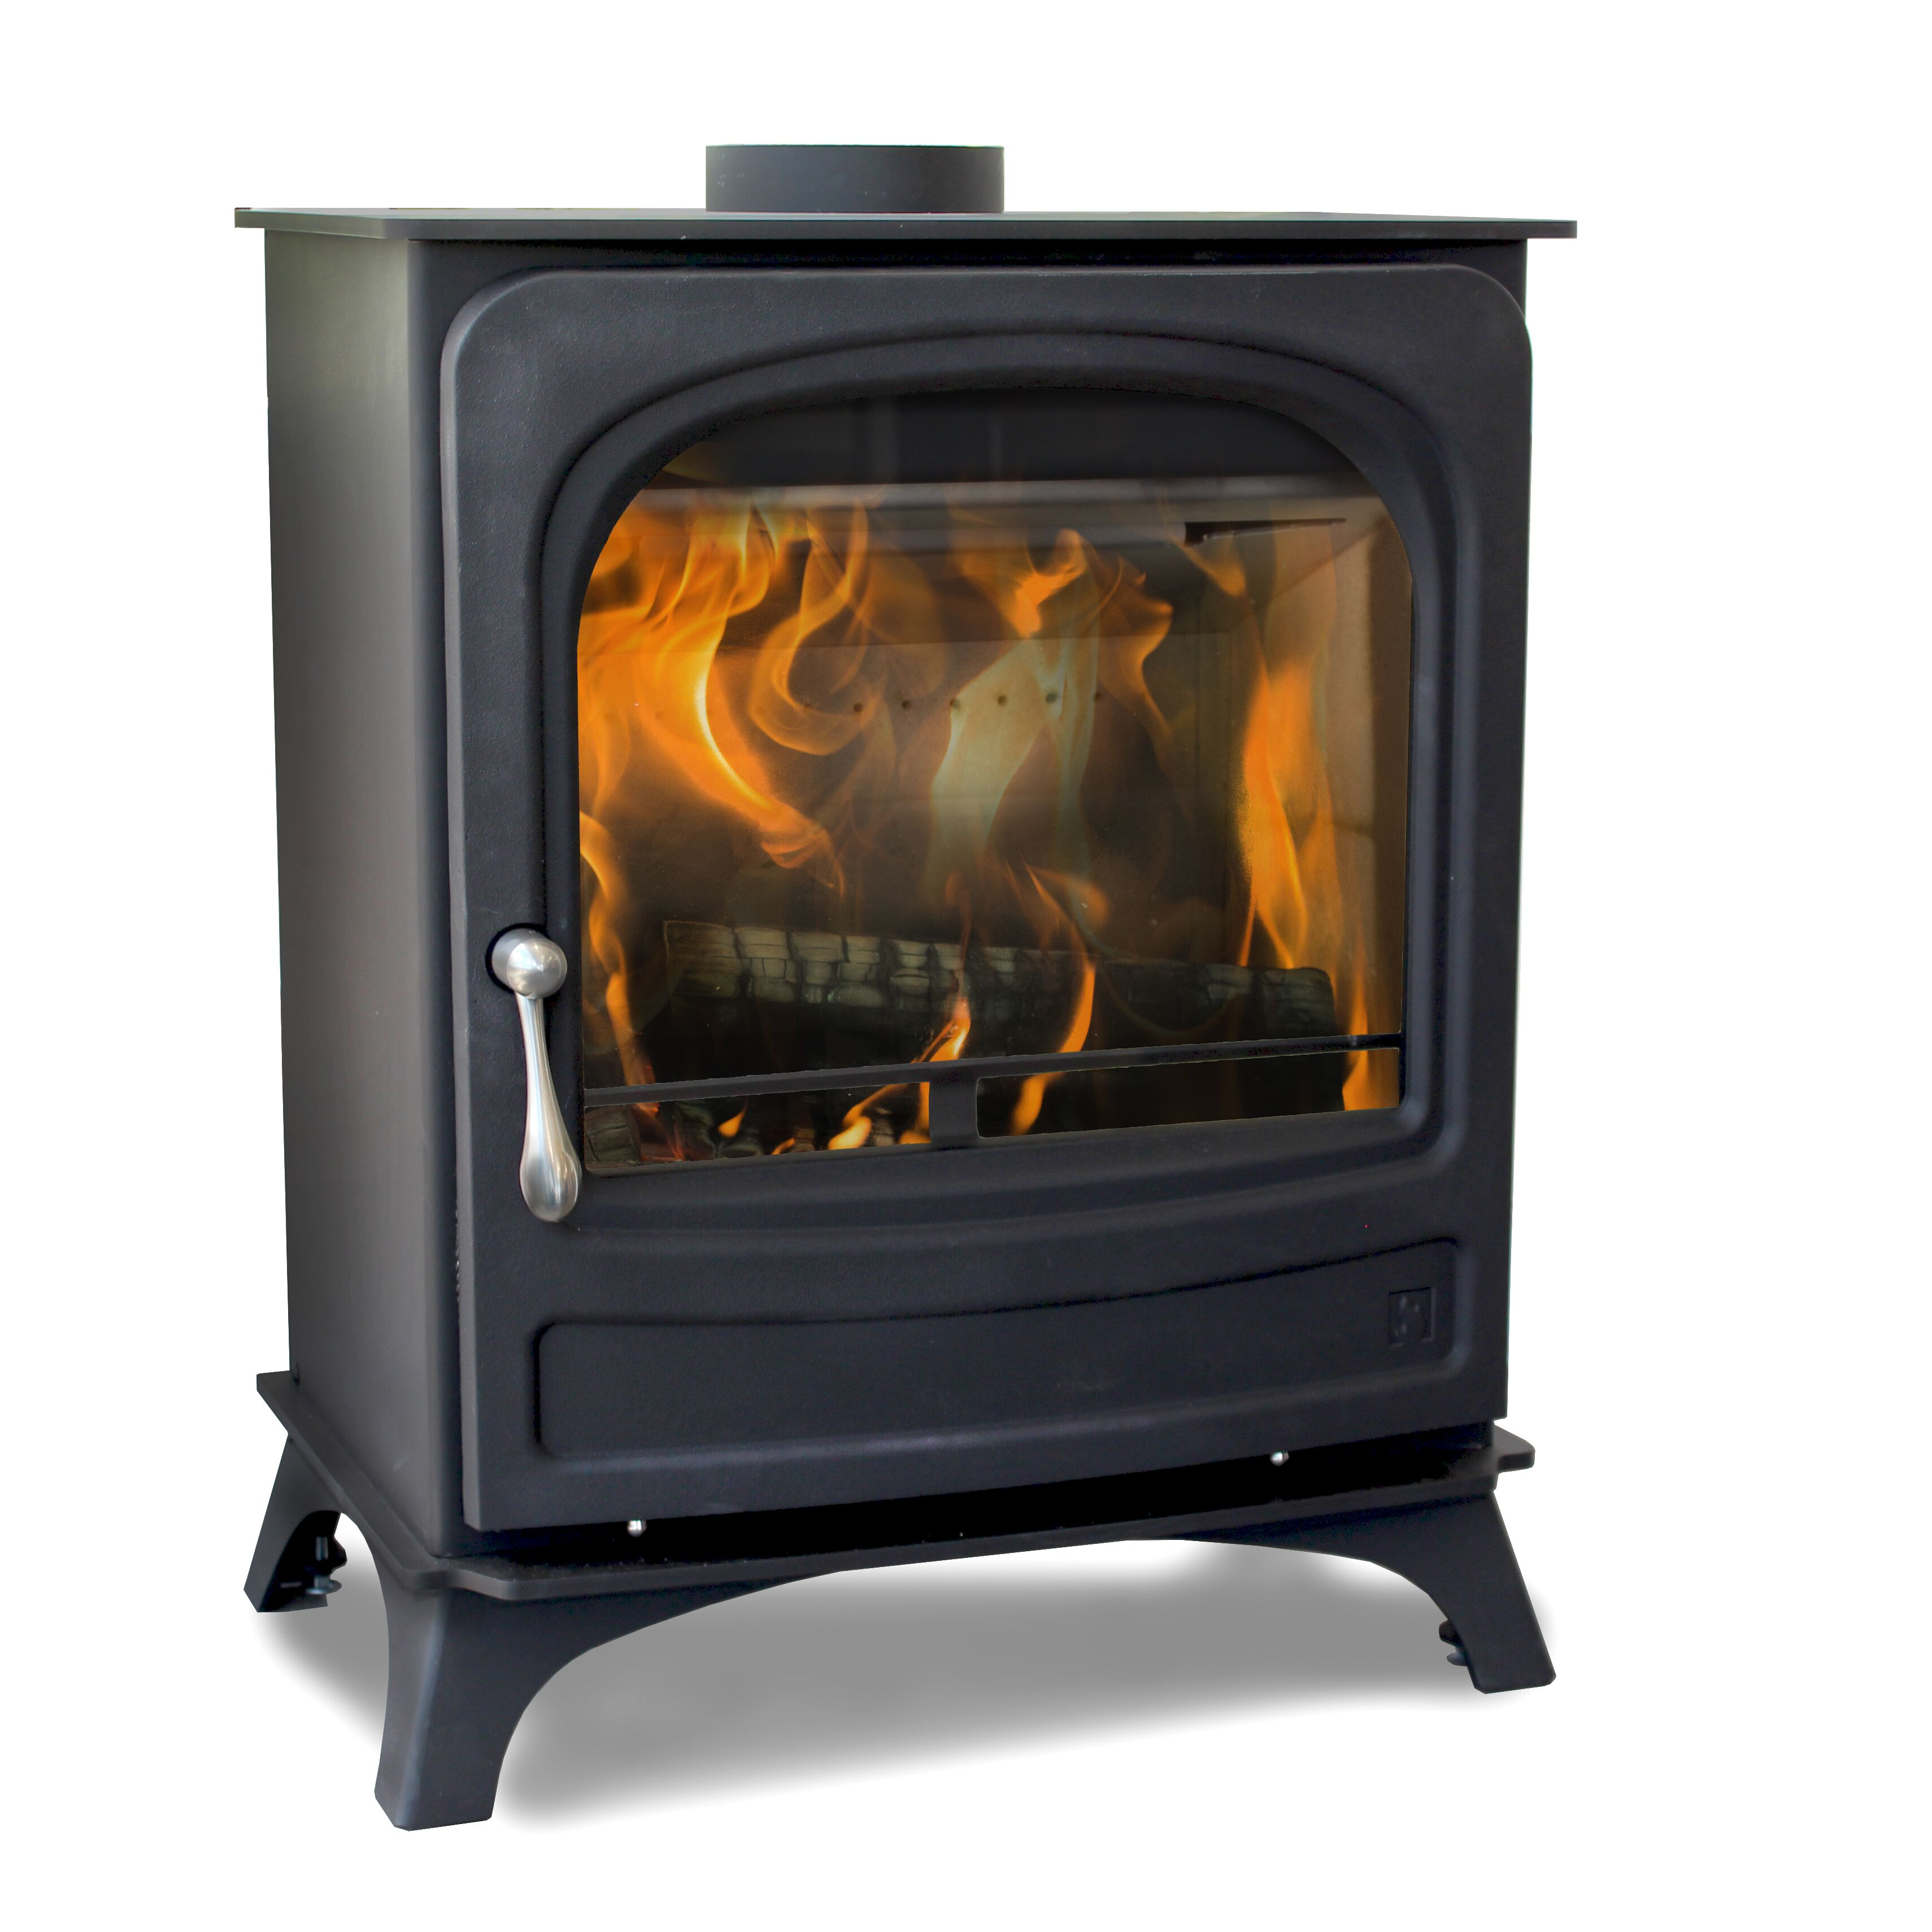 4.9kW Holborn 5 Widescreen SE Woodburning Stove